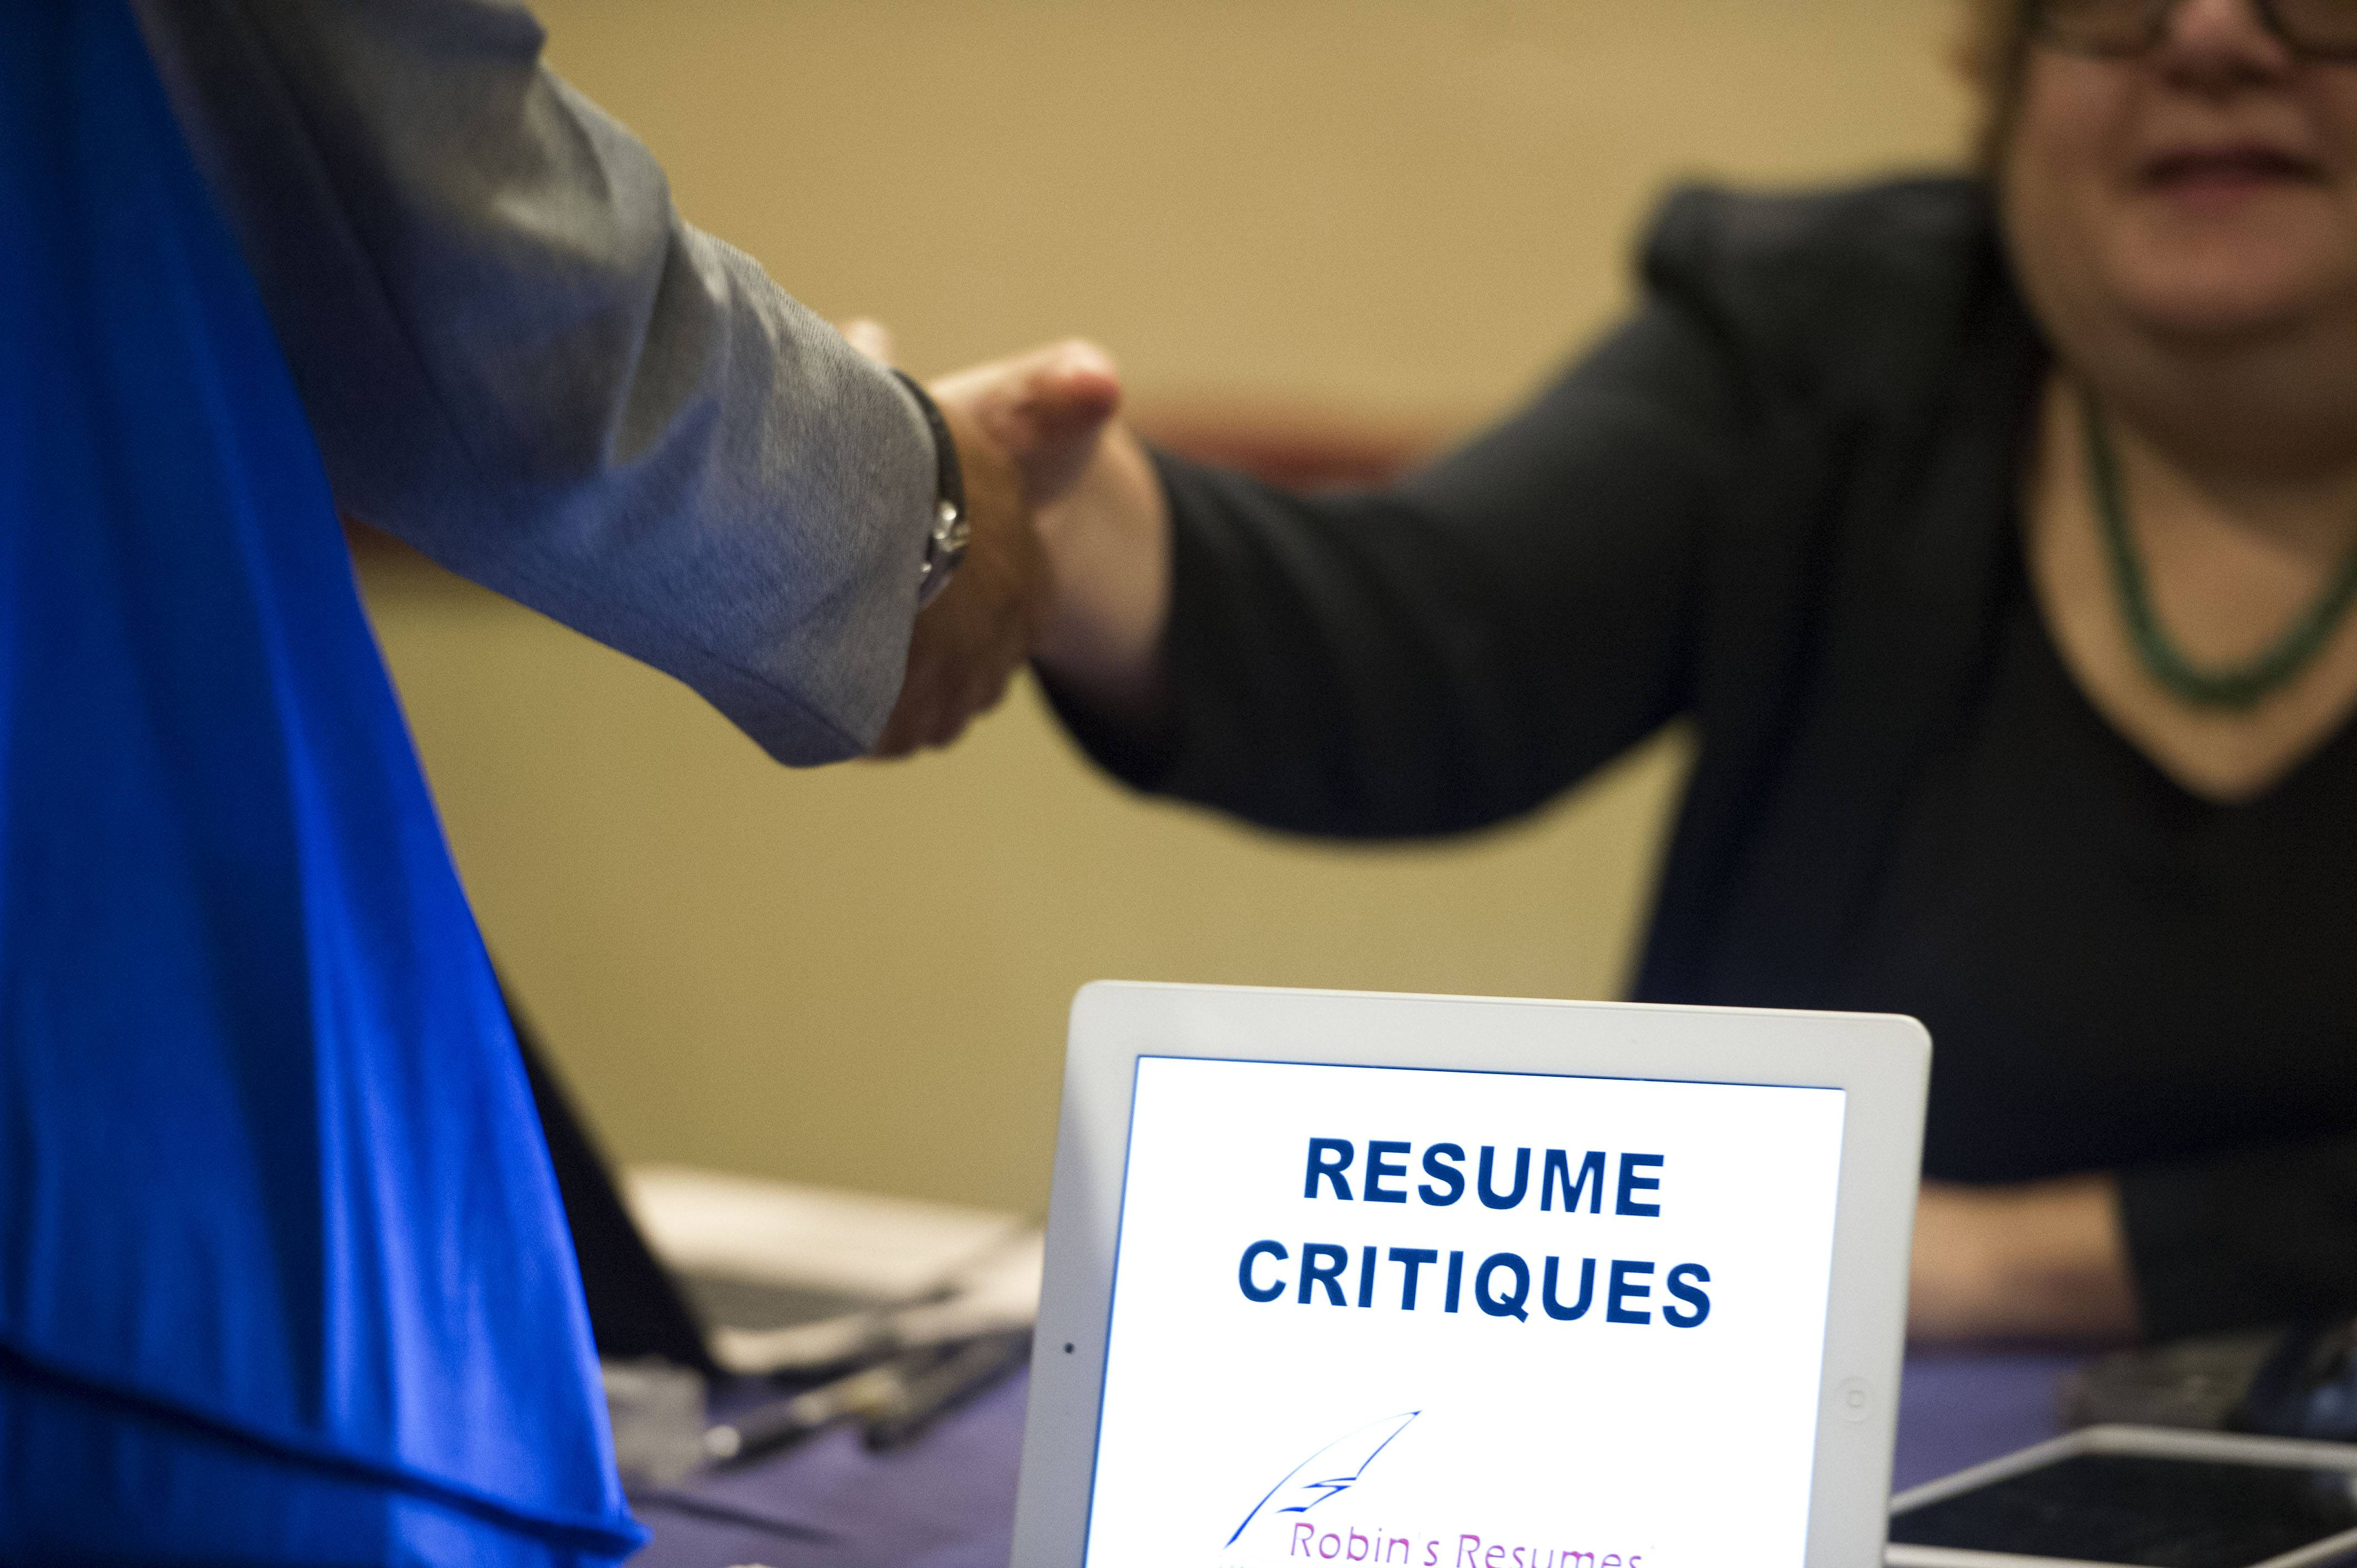 The number of people applying for U.S. unemployment benefits rose 14,000 last week to a seasonally adjusted 348,000, though the broader trend in applications remained stable.